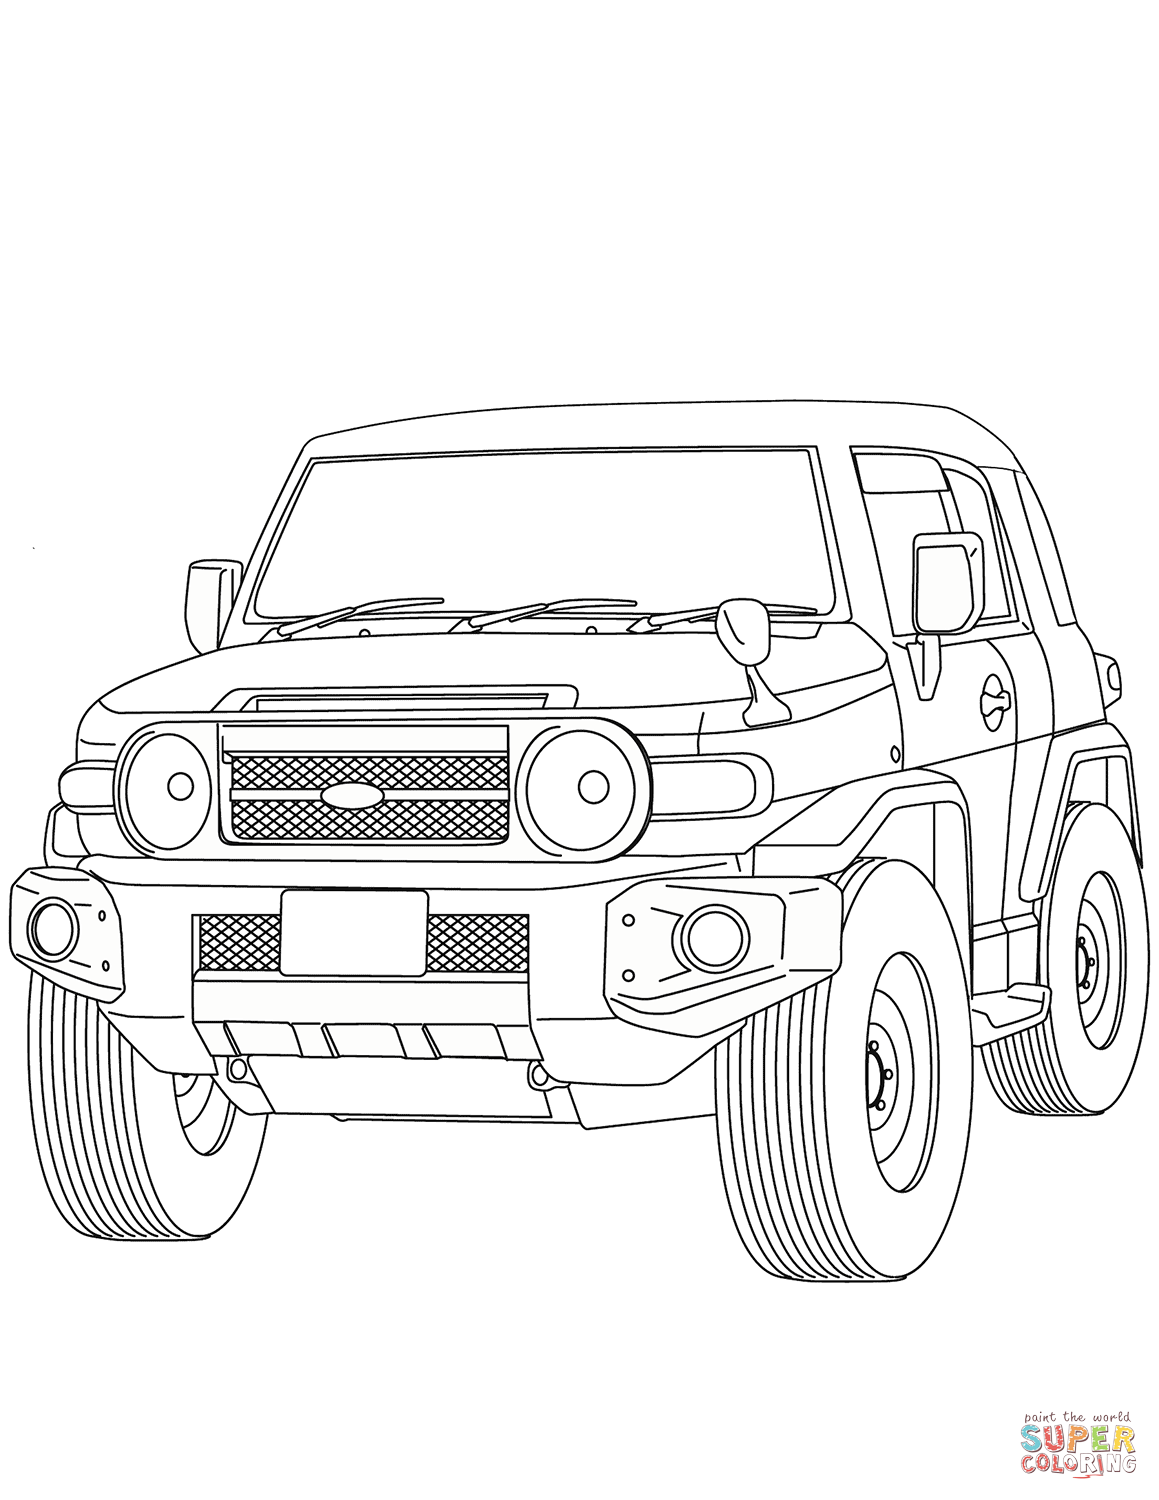 toyota car coloring pages toyota tundra coloring pages at getcoloringscom free toyota car pages coloring